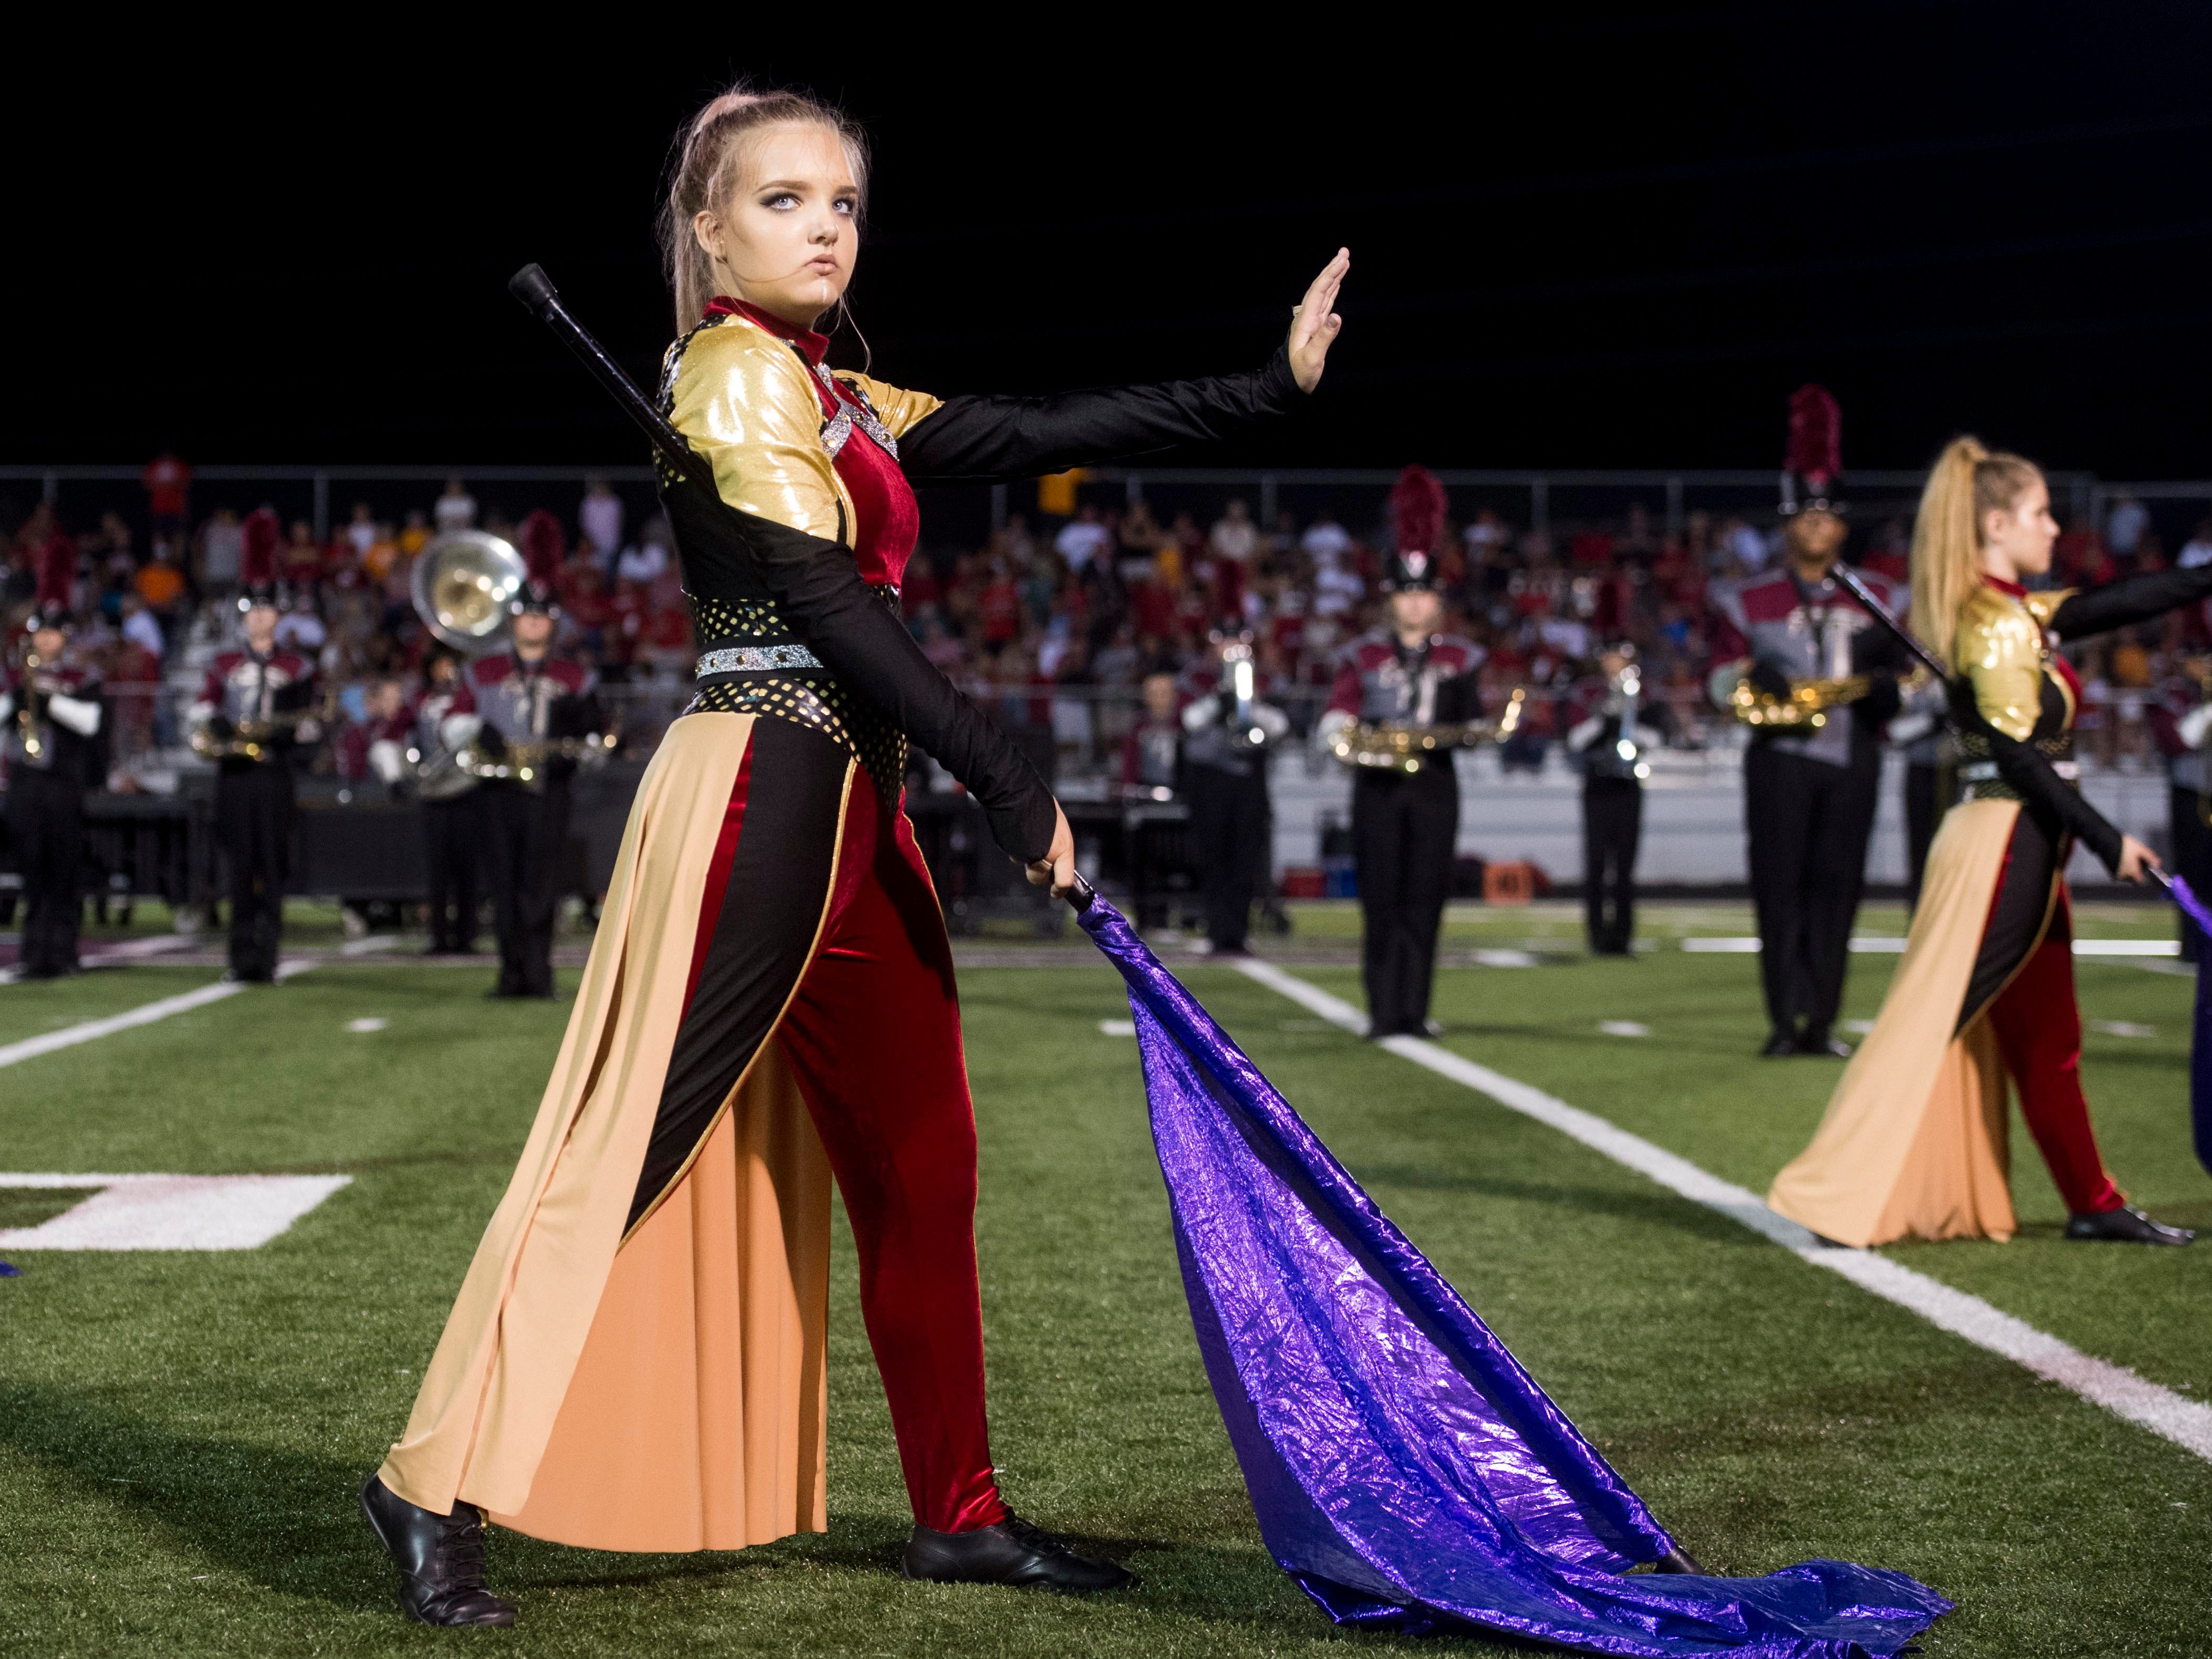 The Fulton High School Band performs at halftime in the football game between Maryville and Fulton on Friday, September 21, 2018. The theme of their show Wakanda Forever.